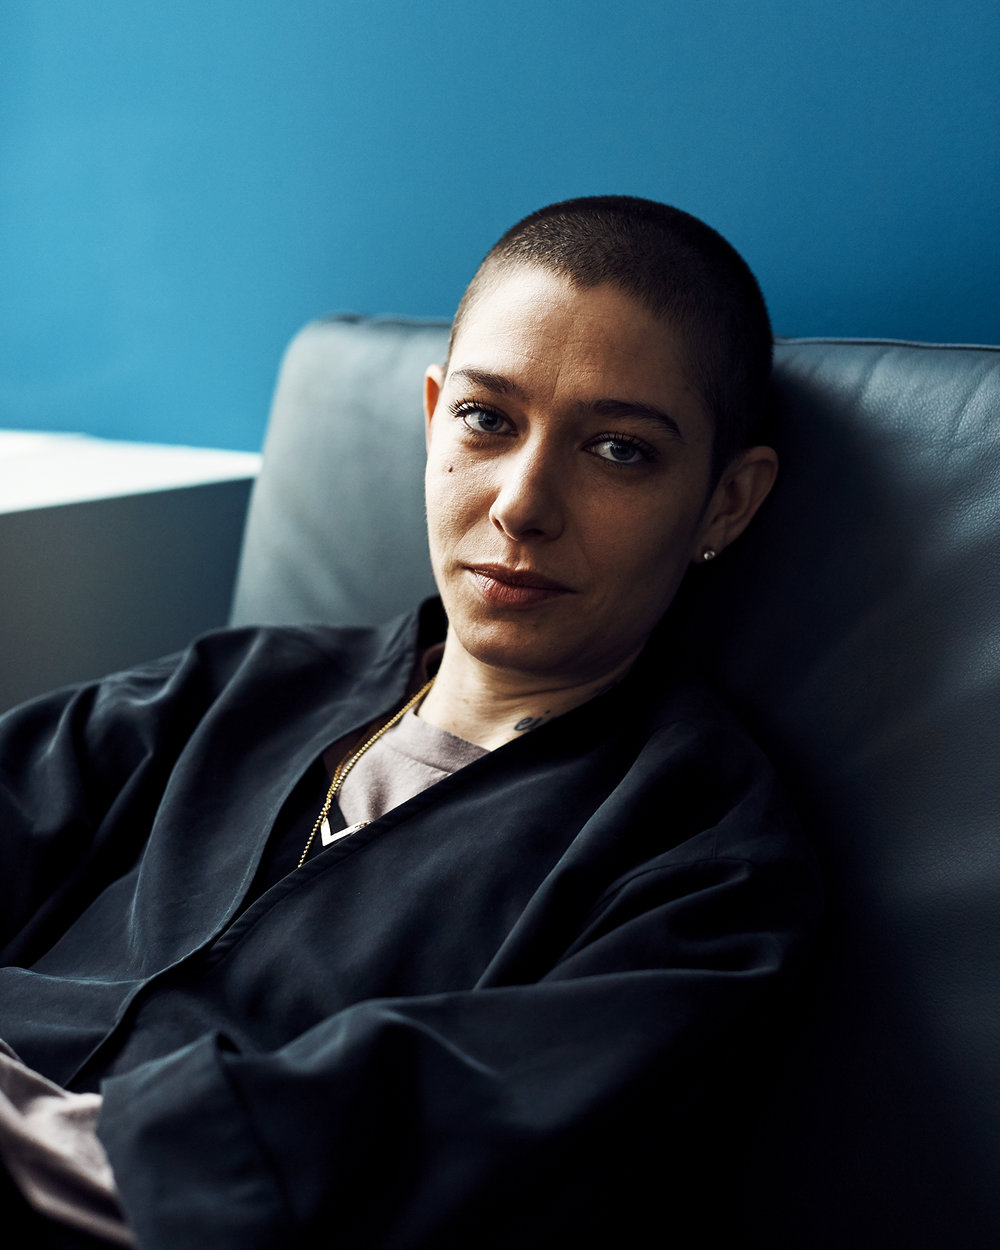 Asia-kate-Dillon-by-Weston-Wells.jpg